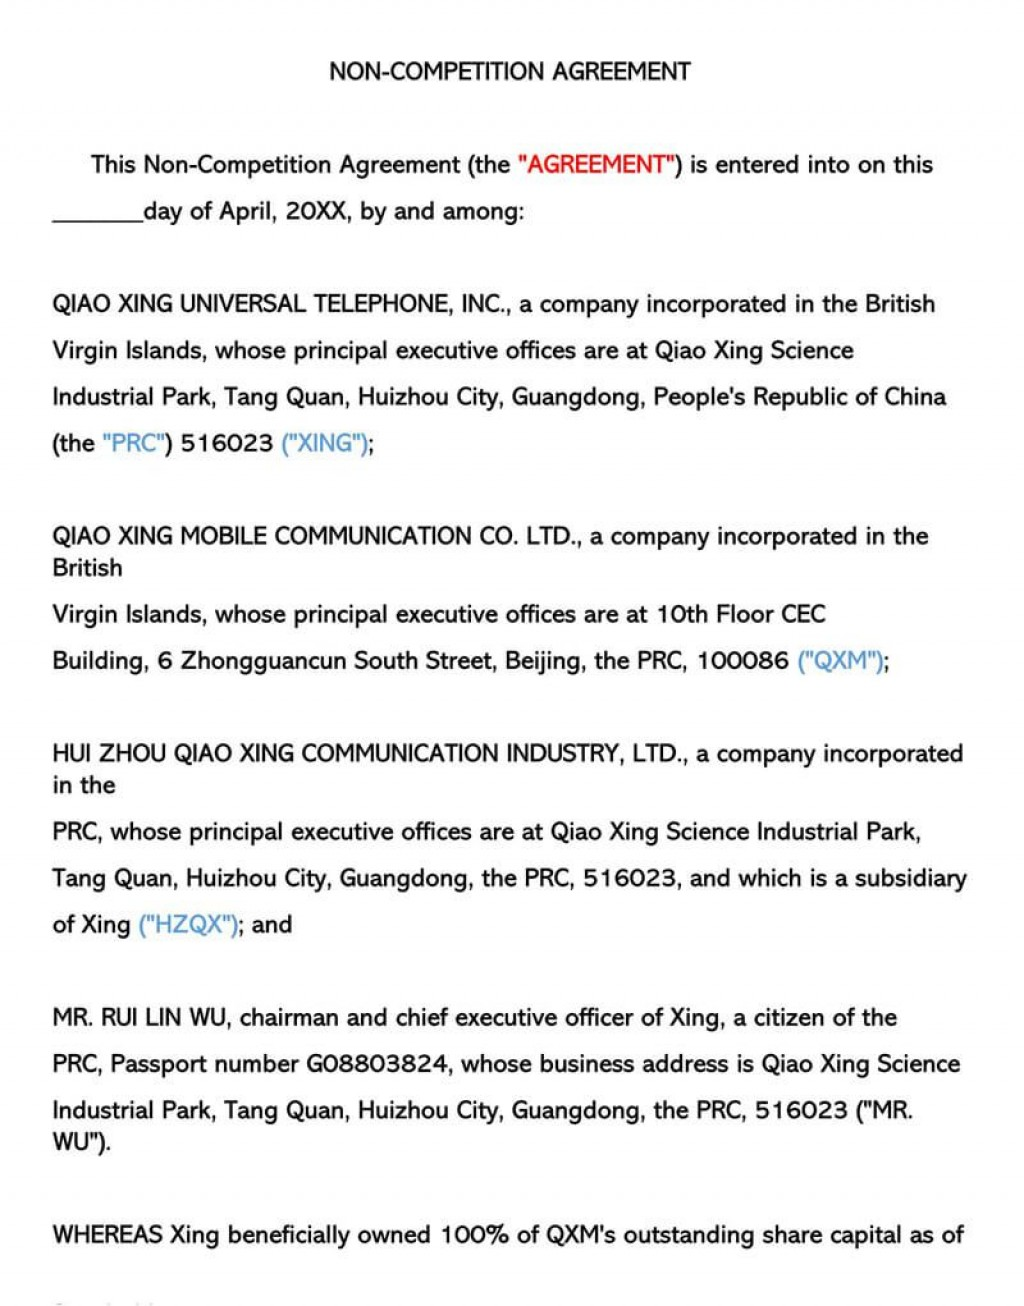 008 Marvelou Non Compete Agreement Template California Image Large